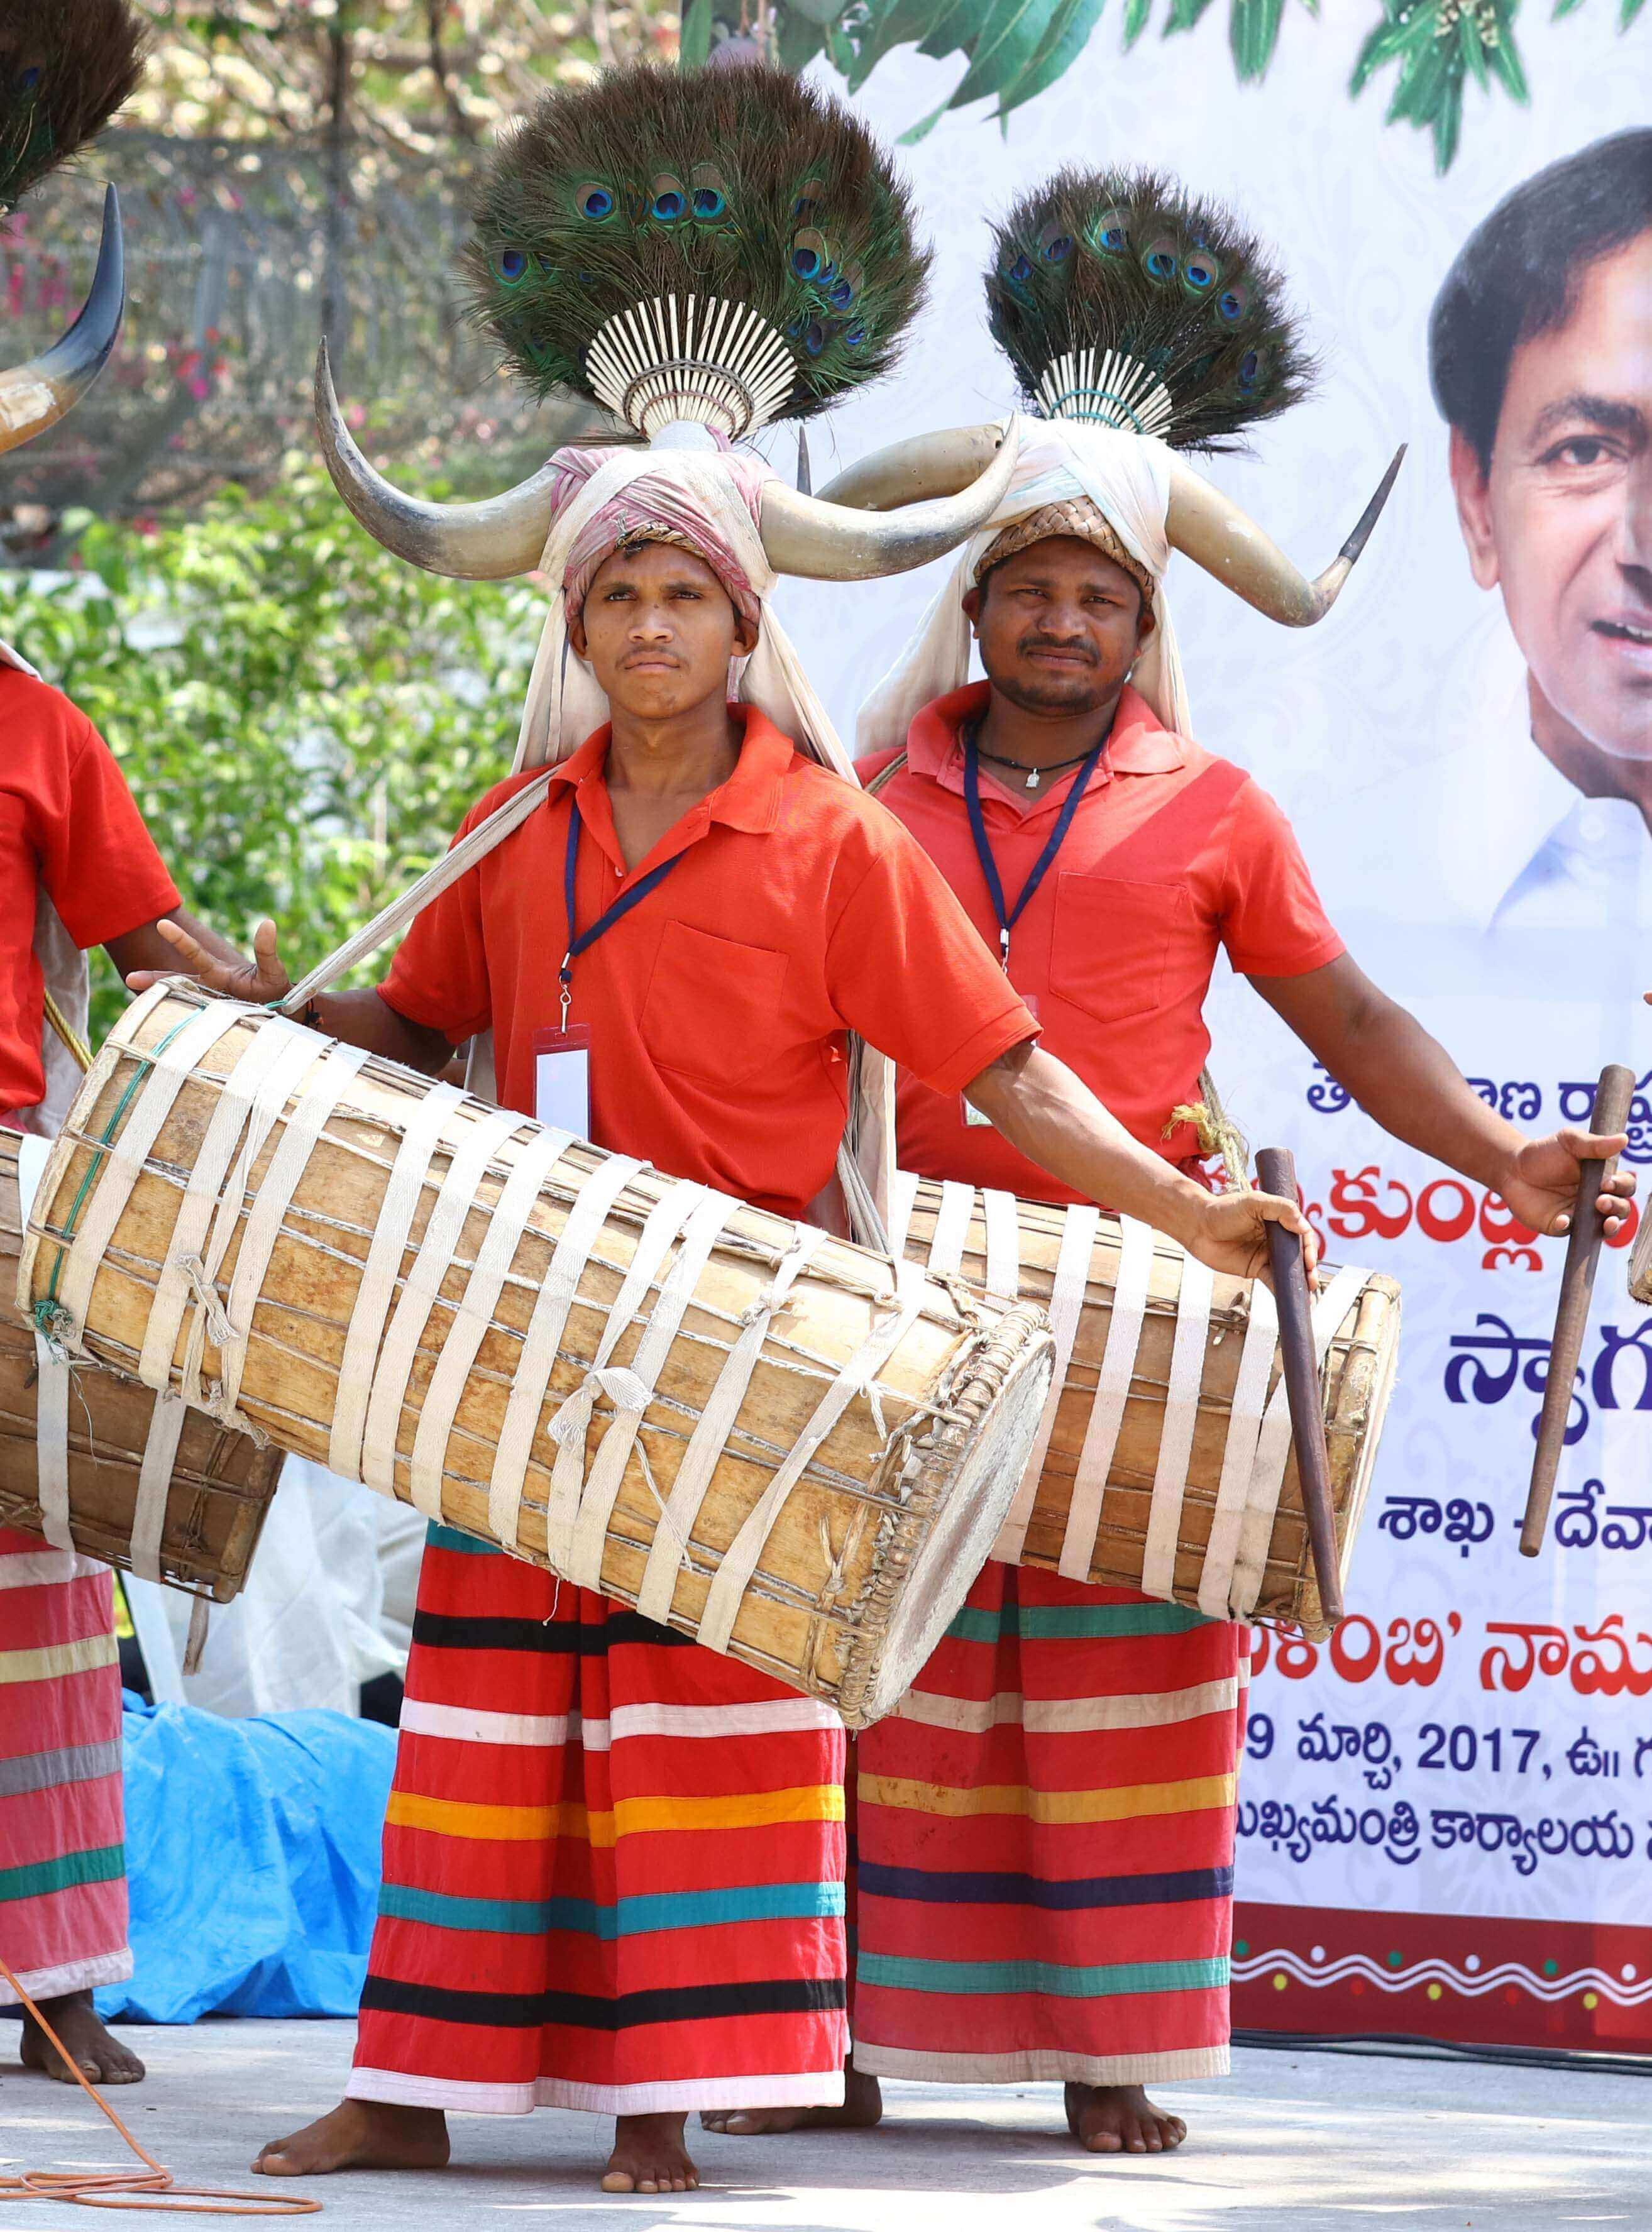 Telangana Chief Minister K Chandrashekhar Rao in Hevalambhi Ugadi Celebrations at Janahitha on 29-03-2017.